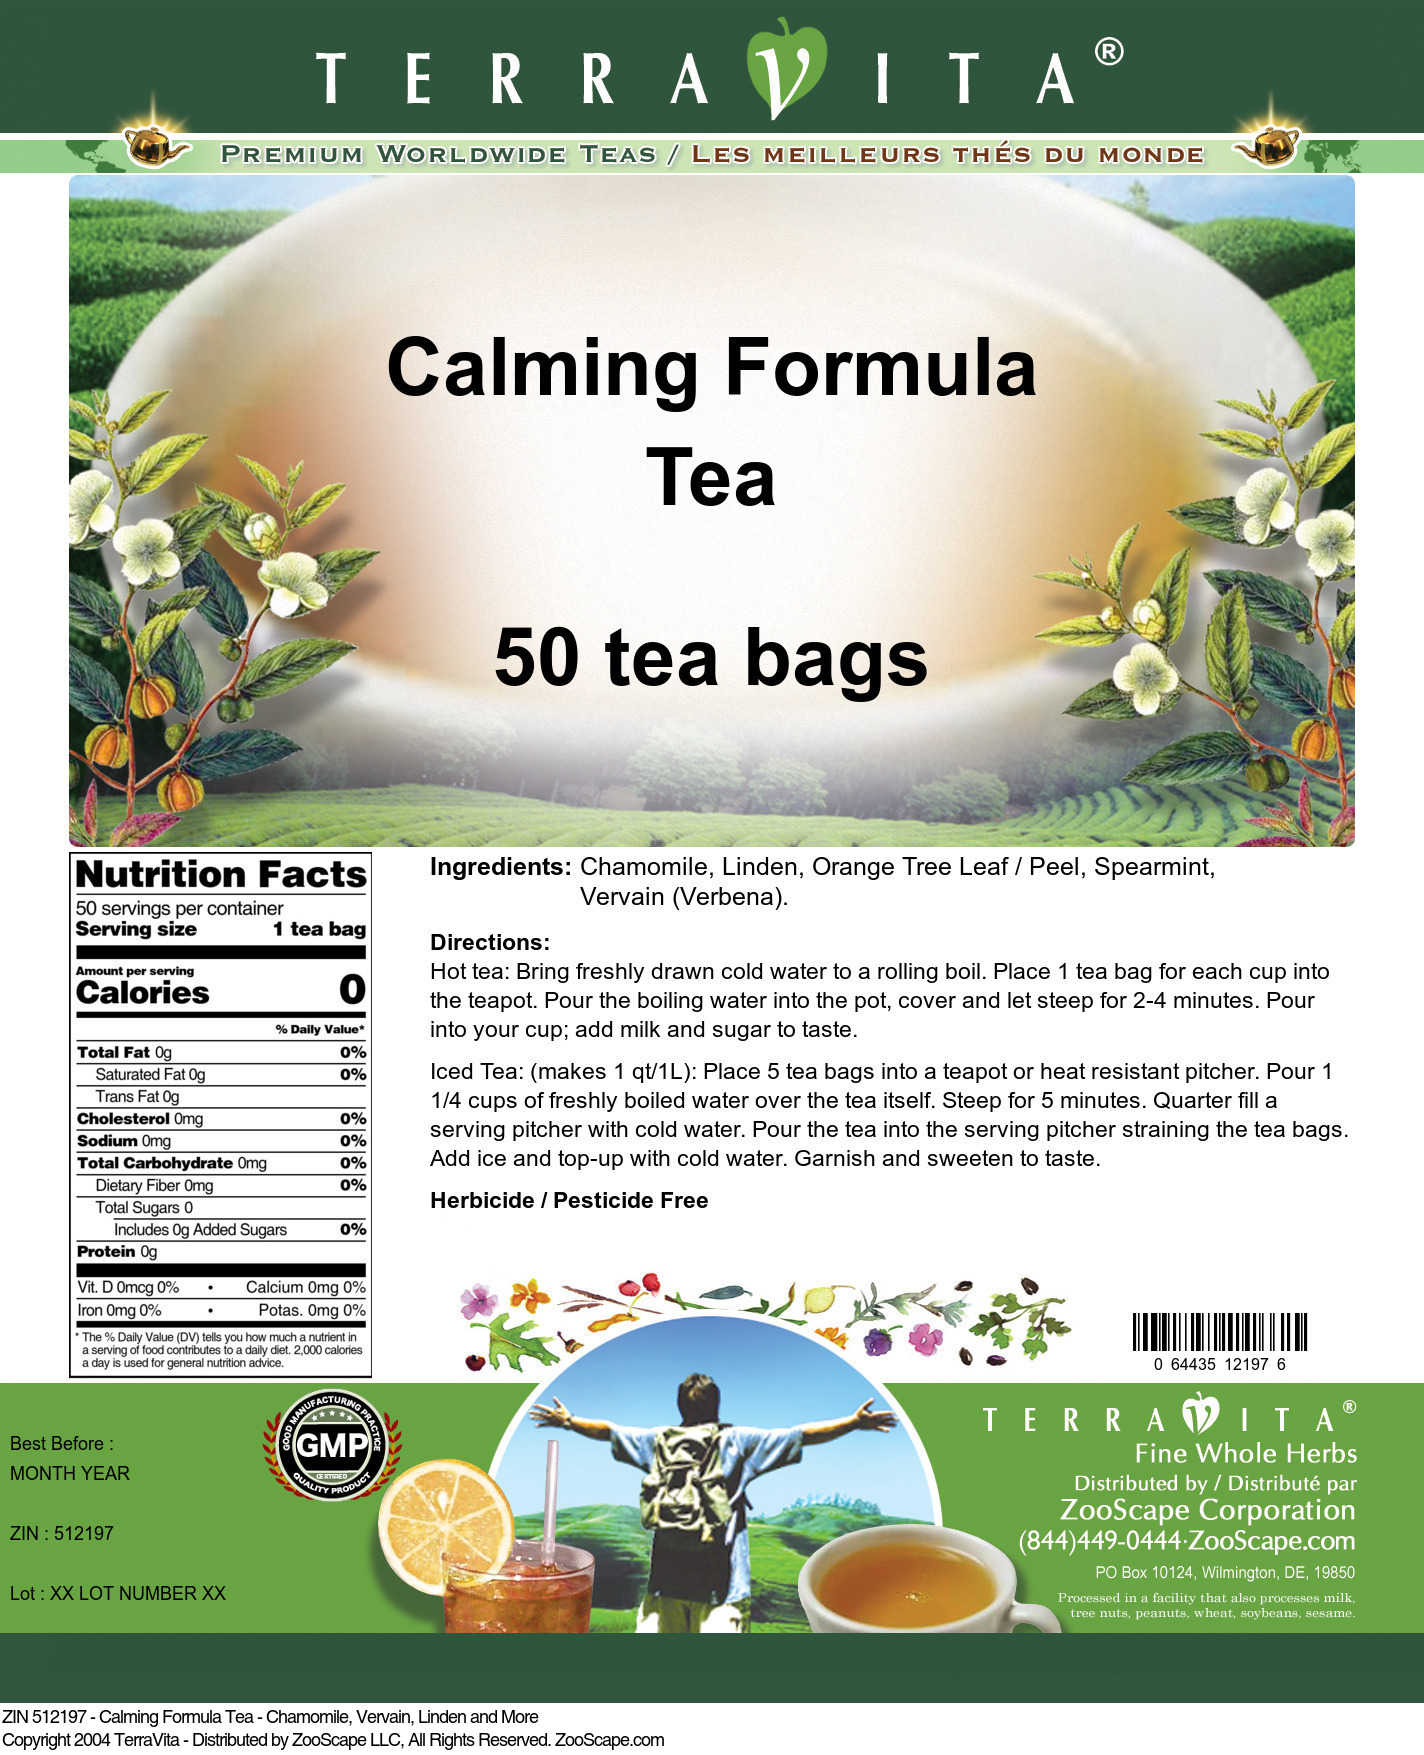 Calming Formula Tea - Chamomile, Vervain, Linden and More